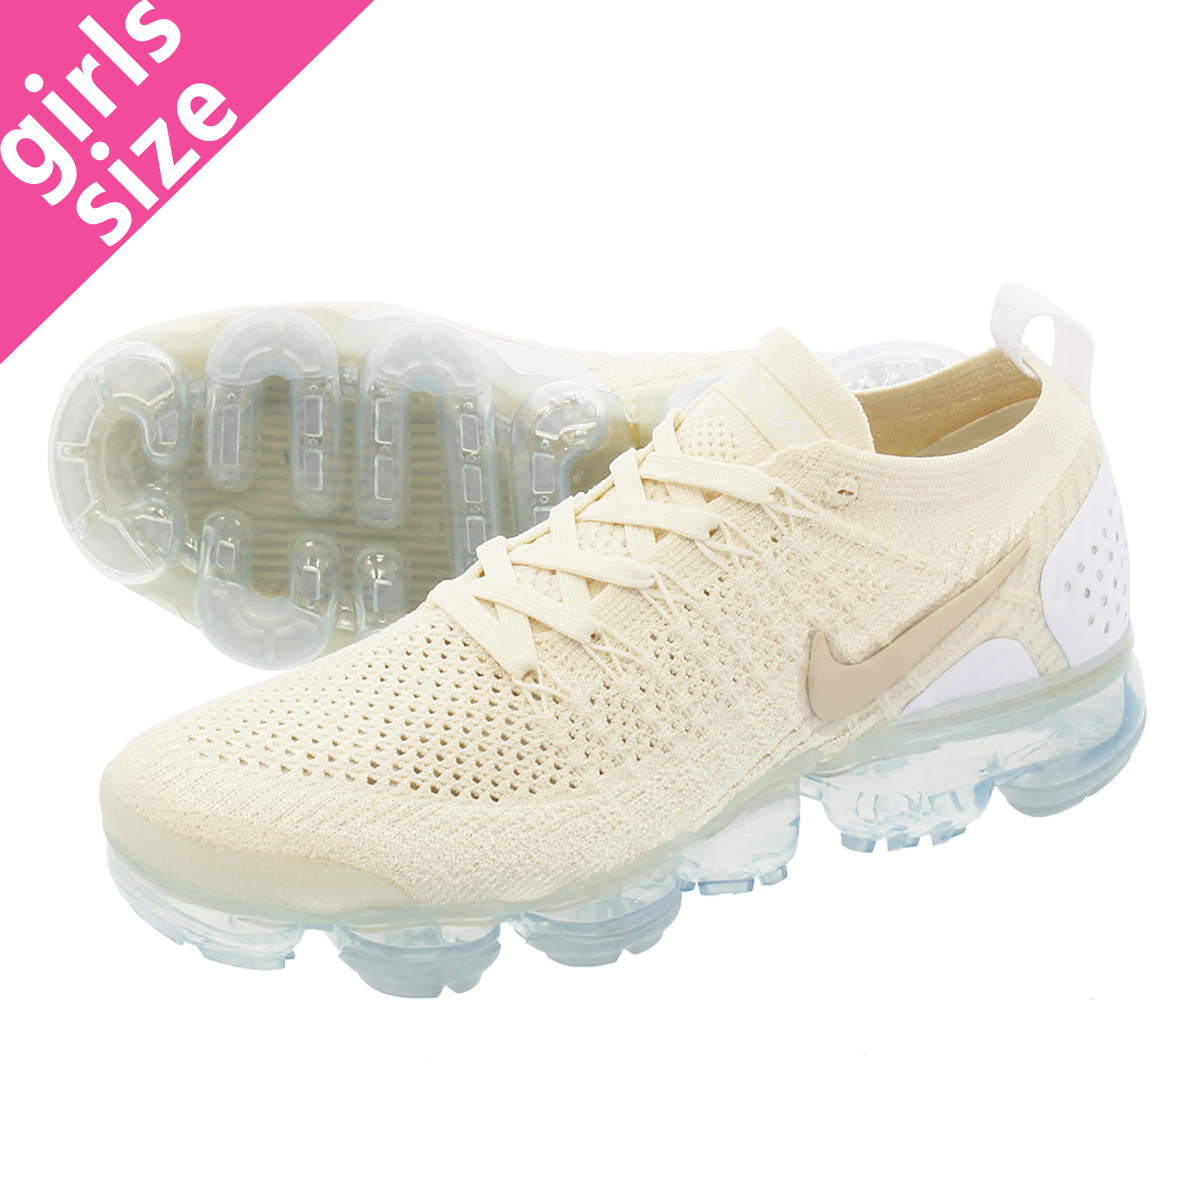 61b88ea626 LOWTEX PLUS: NIKE WMNS AIR VAPORMAX FLYKNIT 2 Nike women vapor max fried  food knit 2 LIGHT CREAM/WHITE/METALLIC GOLD STAR | Rakuten Global Market